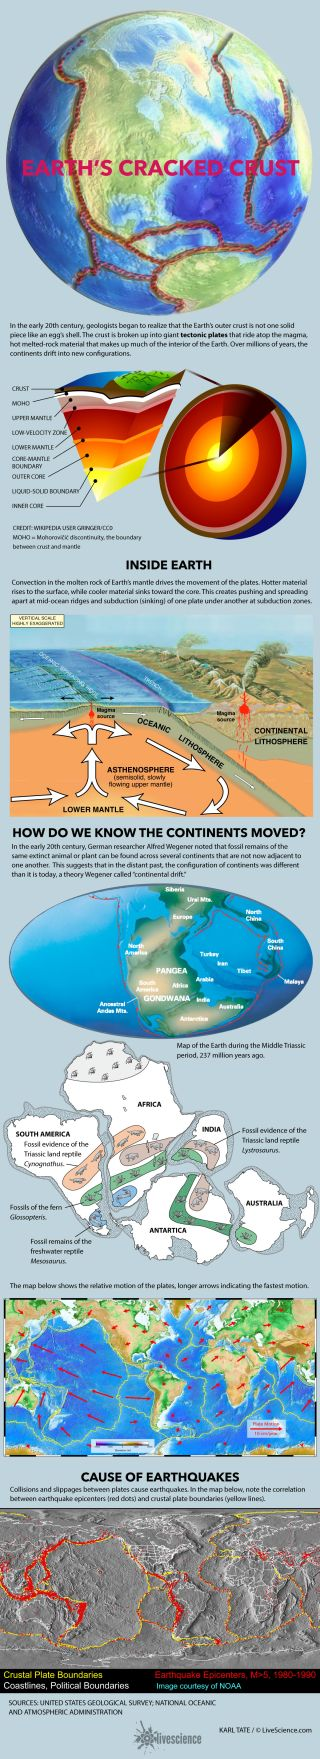 Facts about the tectonic plates.